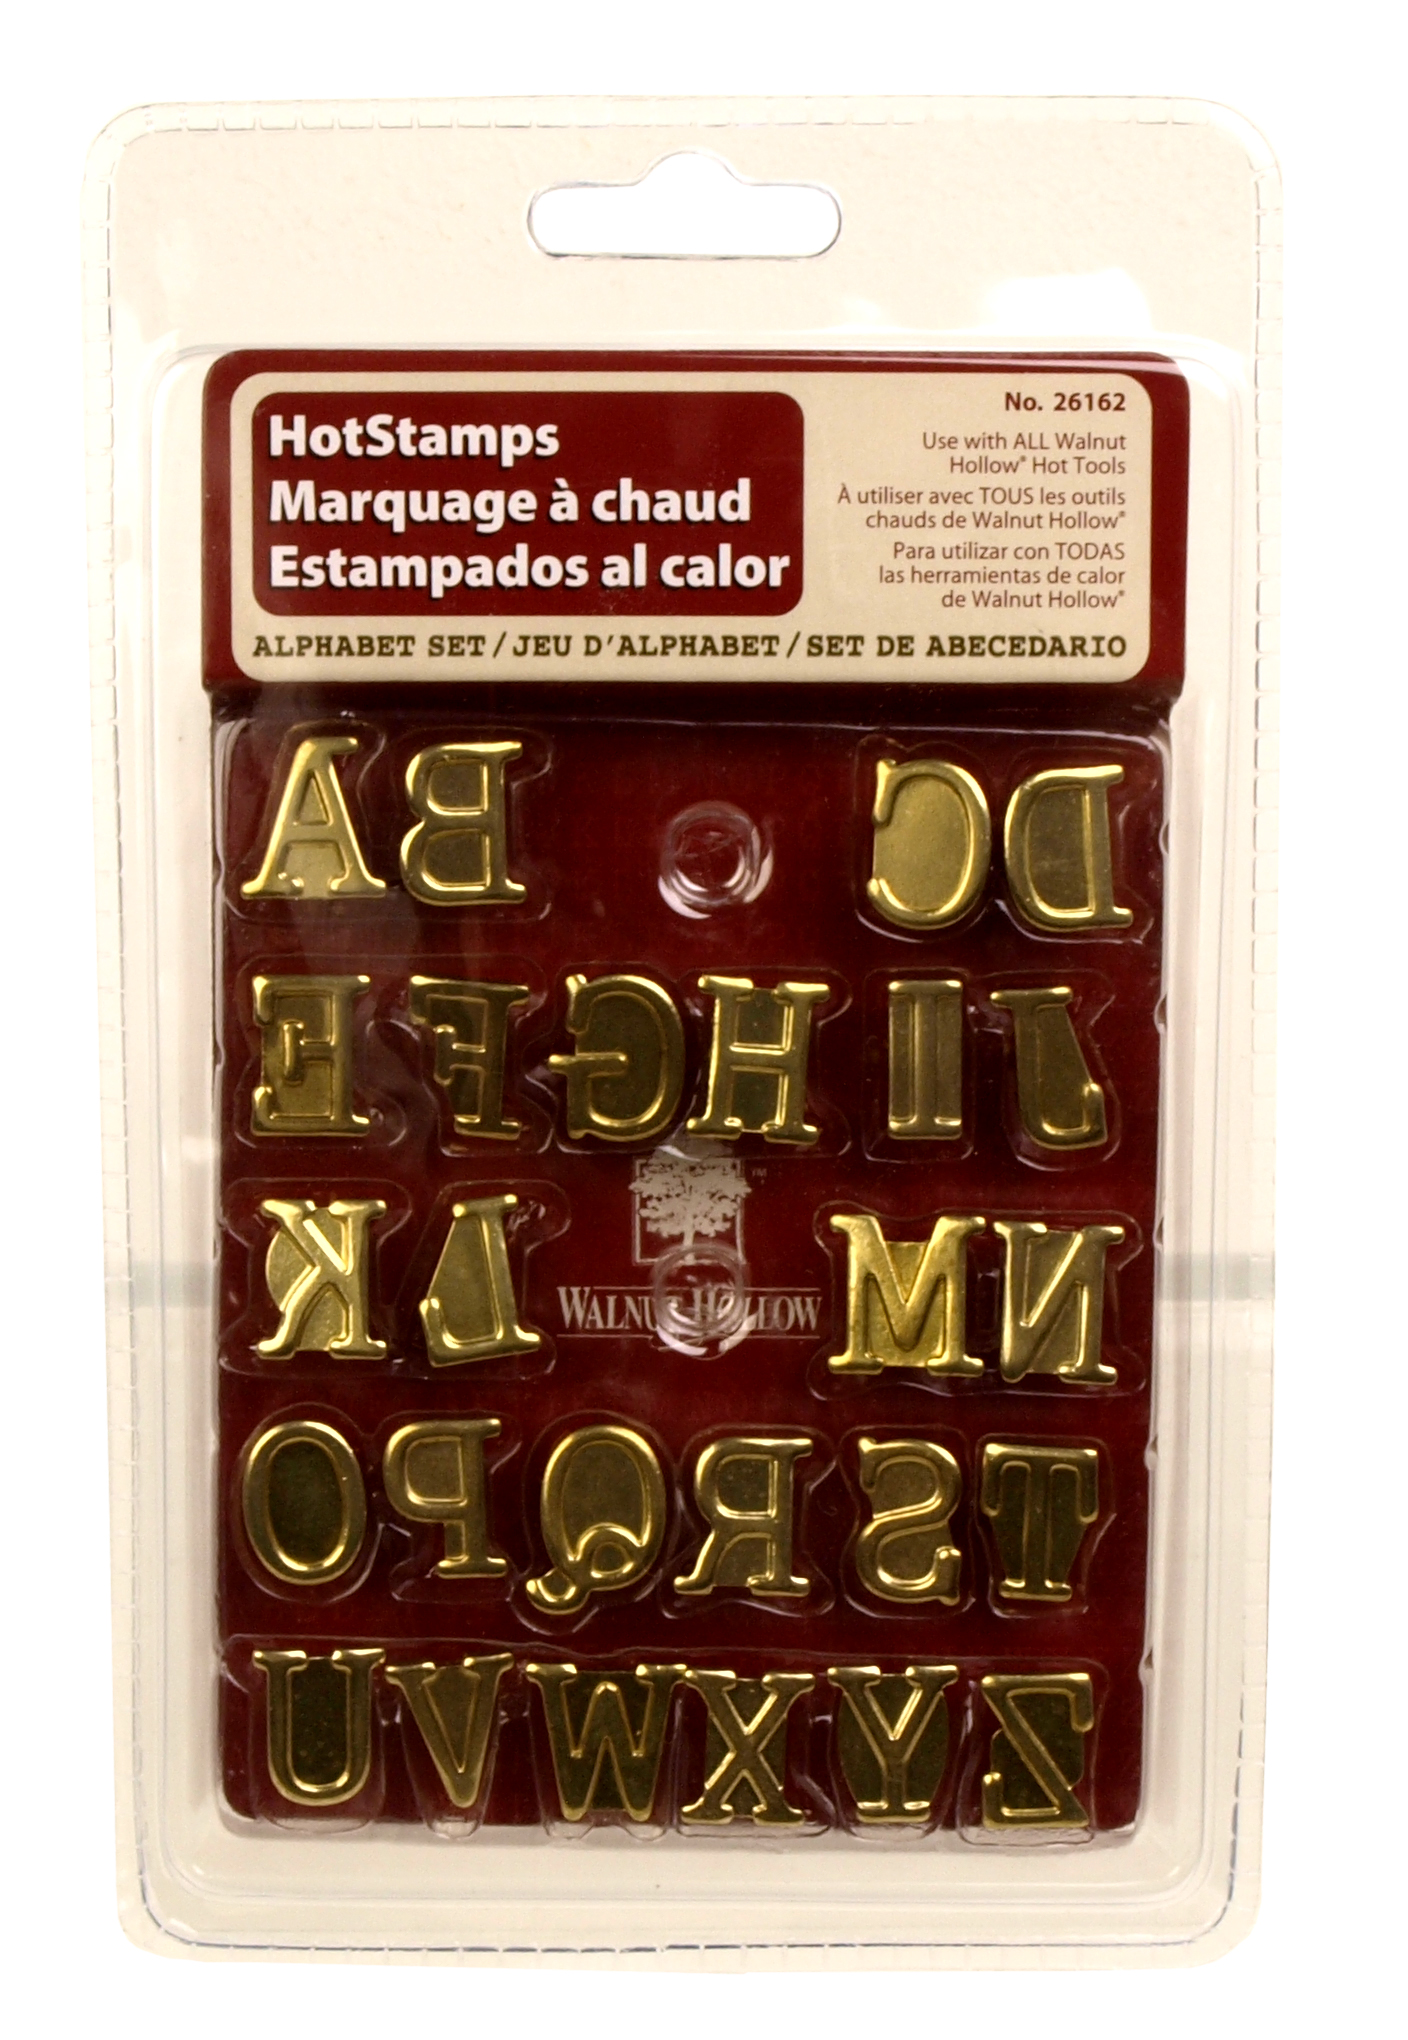 Wood burning on spoons walnuthollowcrafts 26162 hotstamps trilingual spiritdancerdesigns Gallery